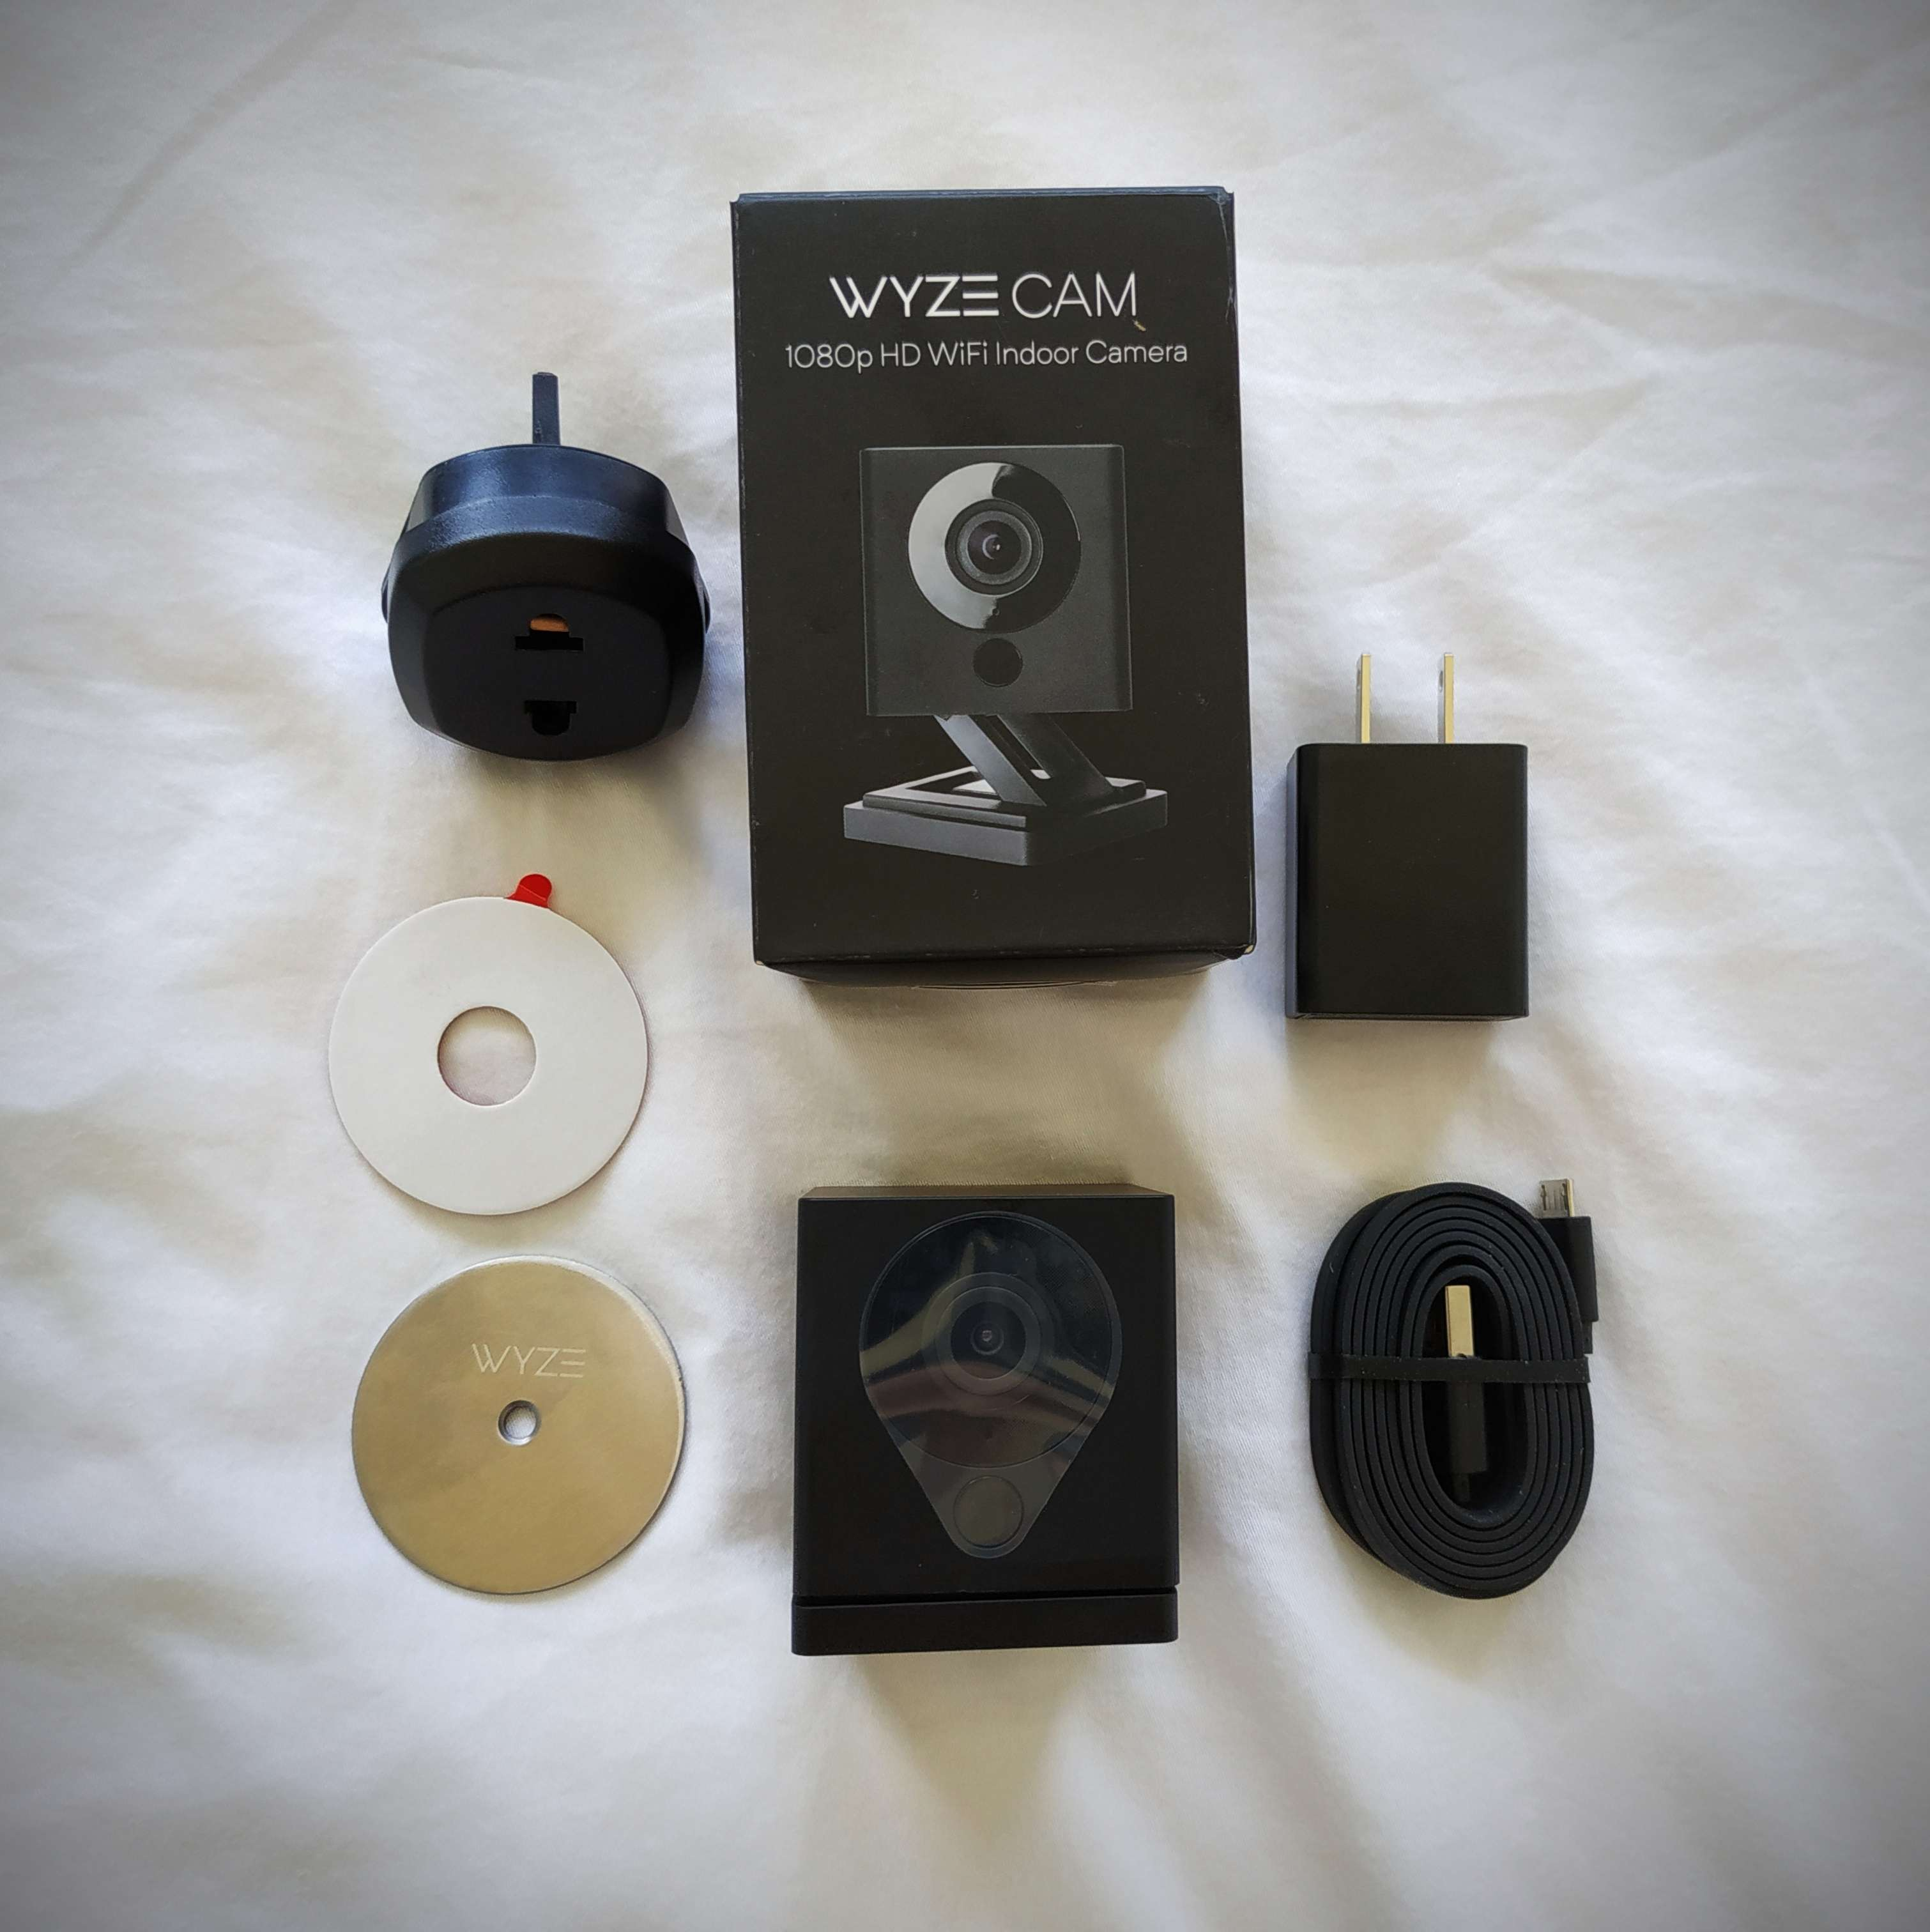 Wyze Cam V2 1080p Hd Indoor Wireless Smart Home Camera With Night Vision 2 Way Audio Works With Alexa International Shopee Singapore